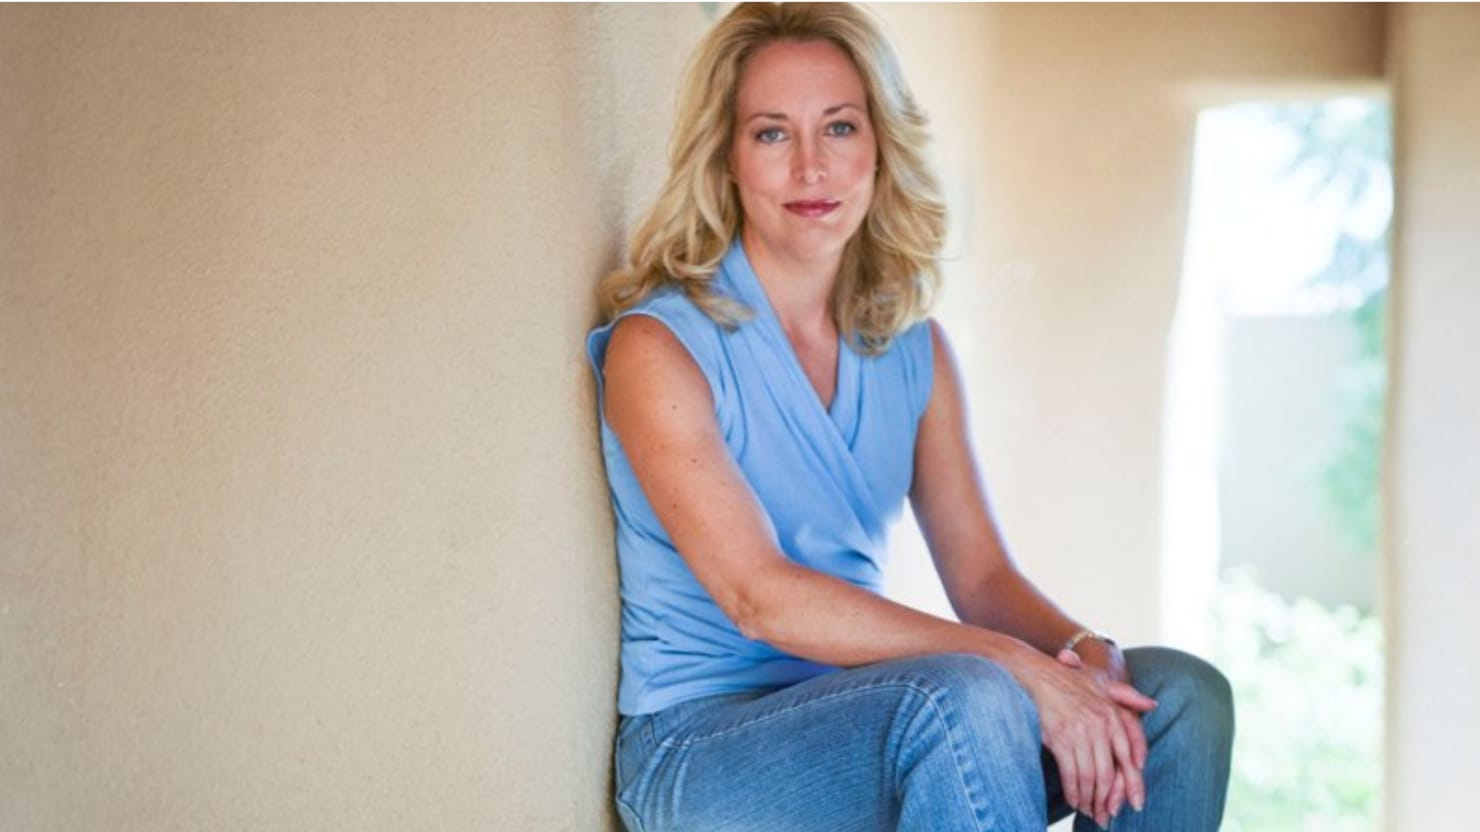 Valerie Plame on Love in the CIA and Her Nuclear Proliferation Nightmare